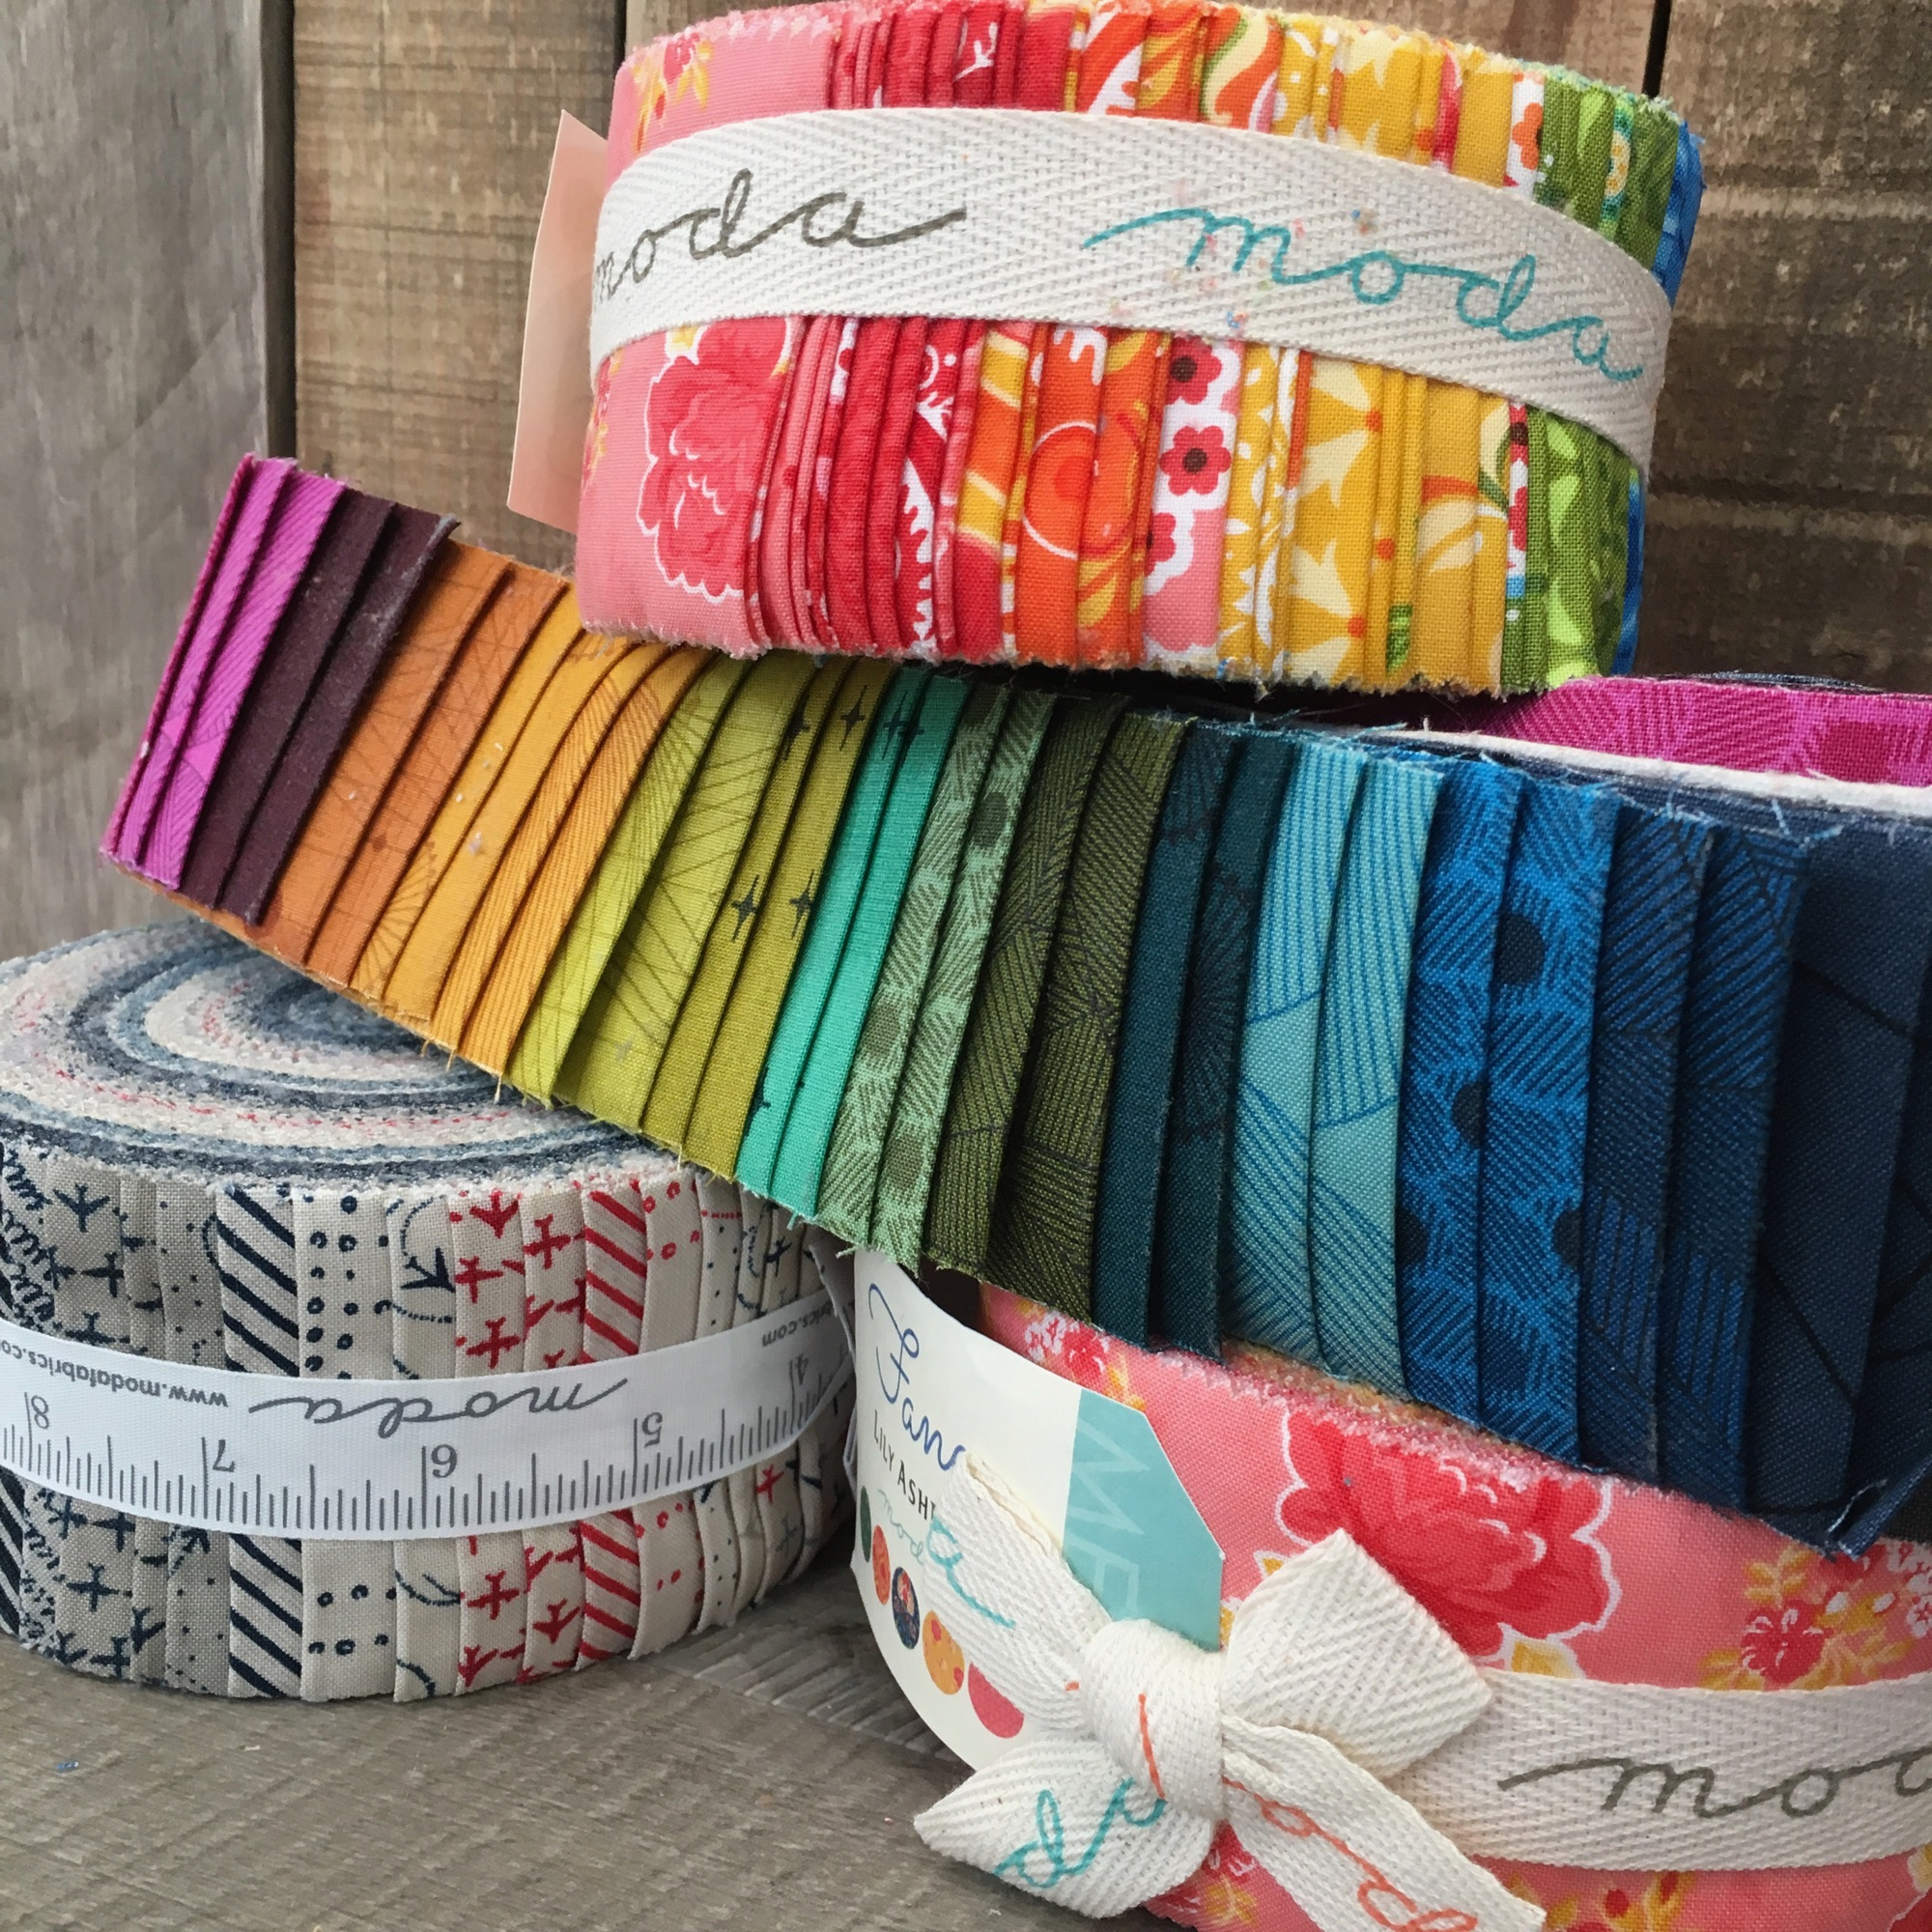 Jelly Roll Open Sewing Day With Made And Making